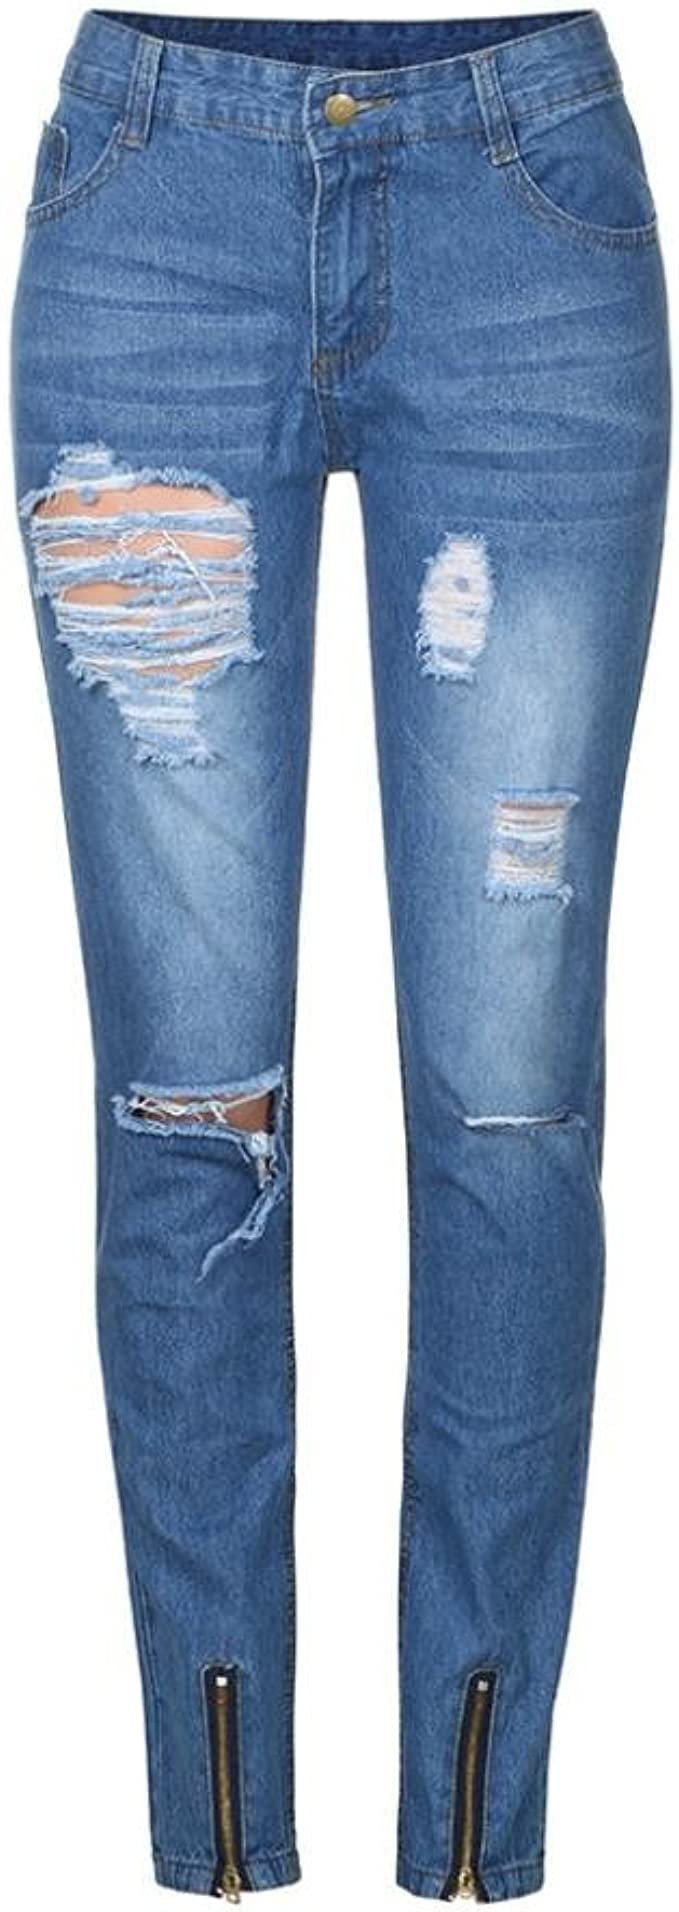 Littleice Casual Pant for Men,Mens Stretchy Slim Fit Denim Pants Casual Long Straight Trousers Skinny Jeans